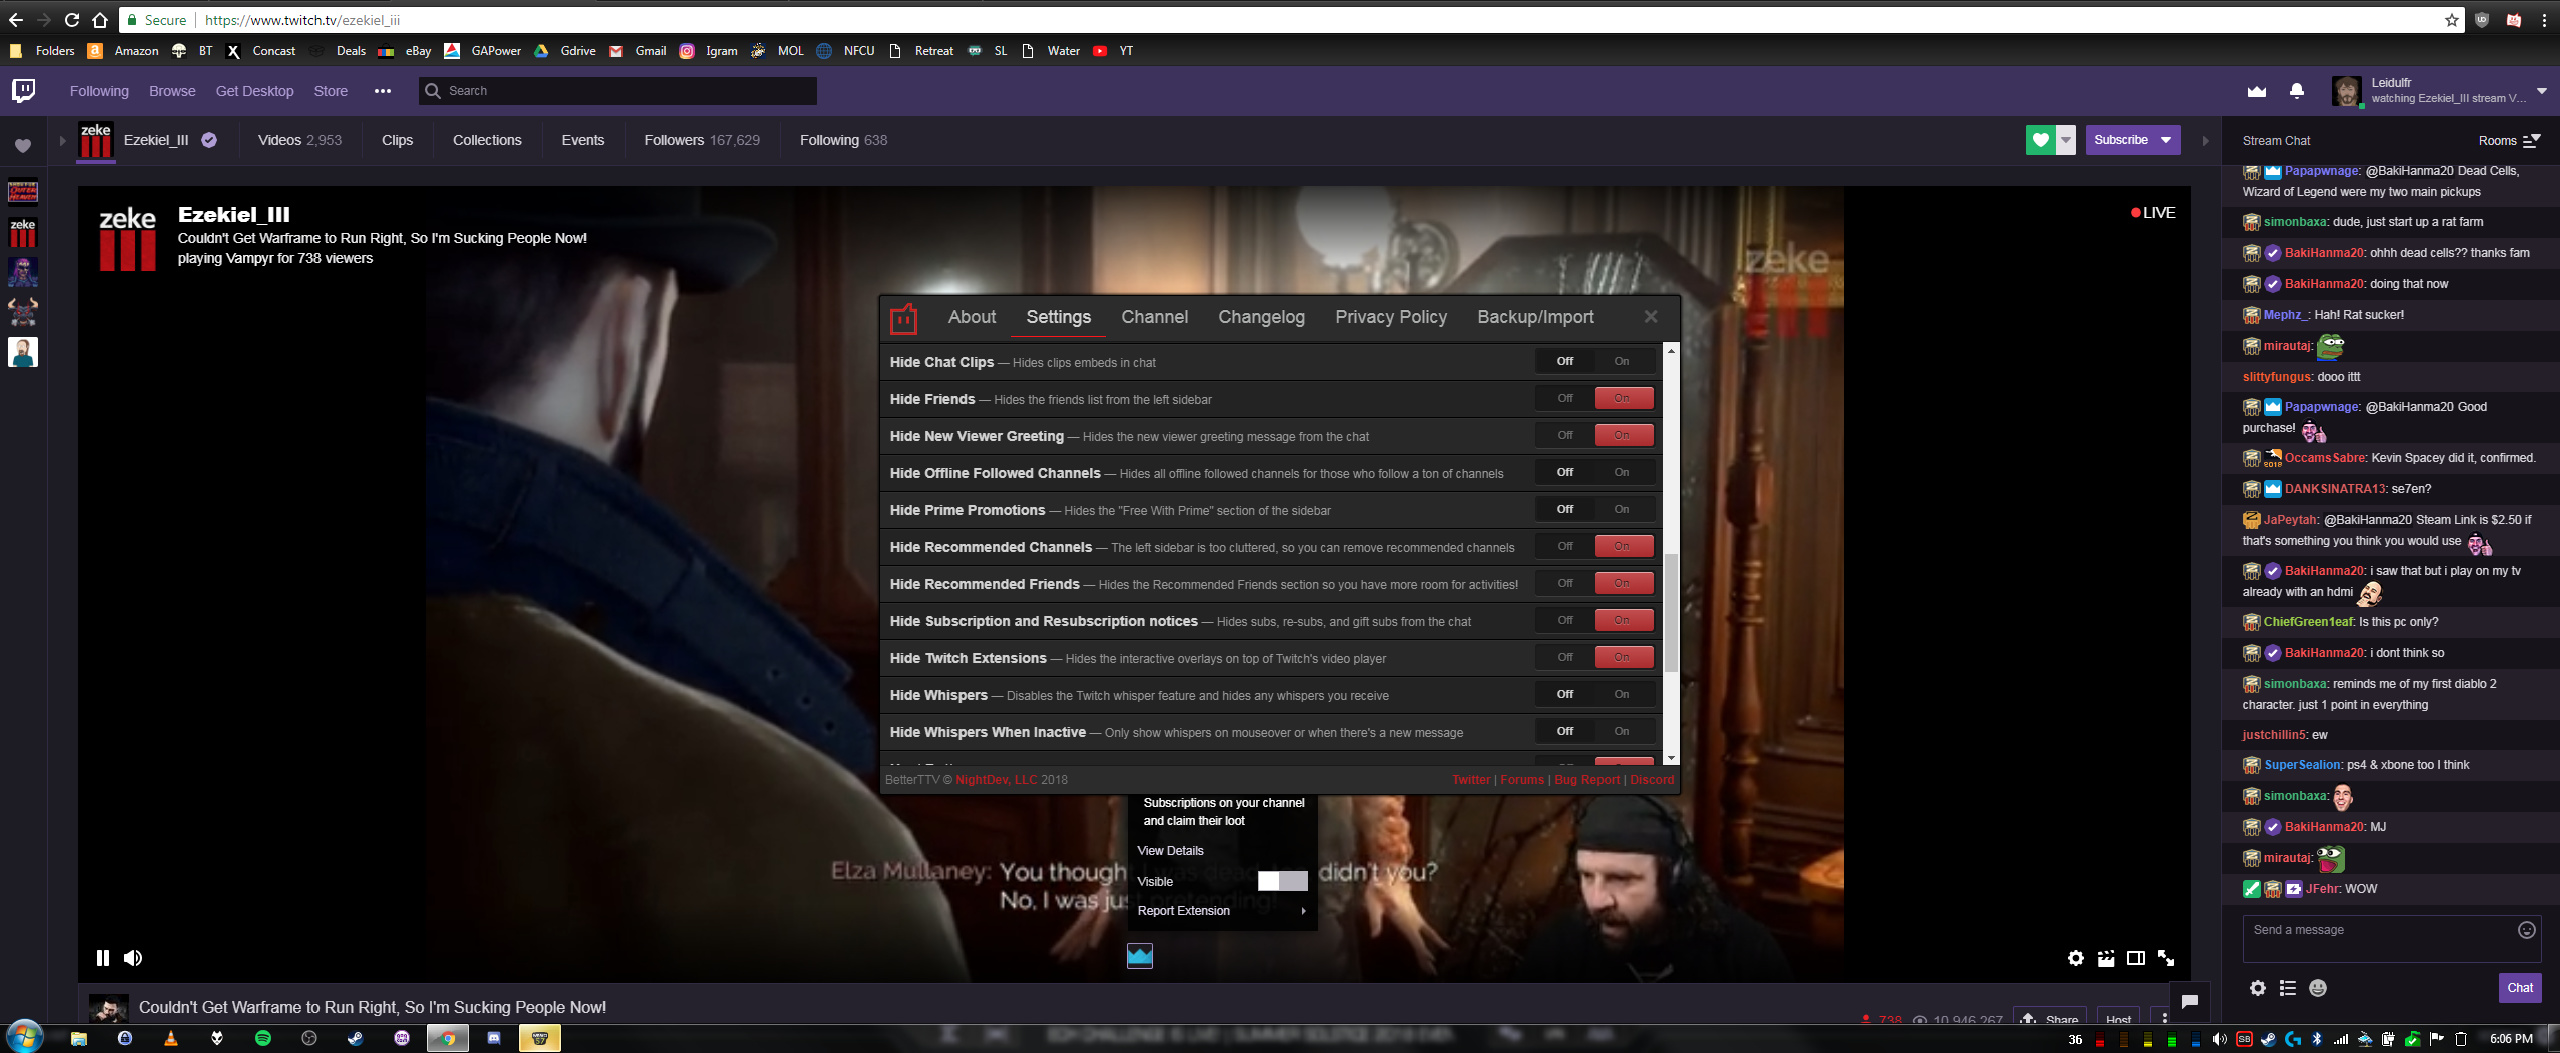 Hide Twitch Extensions